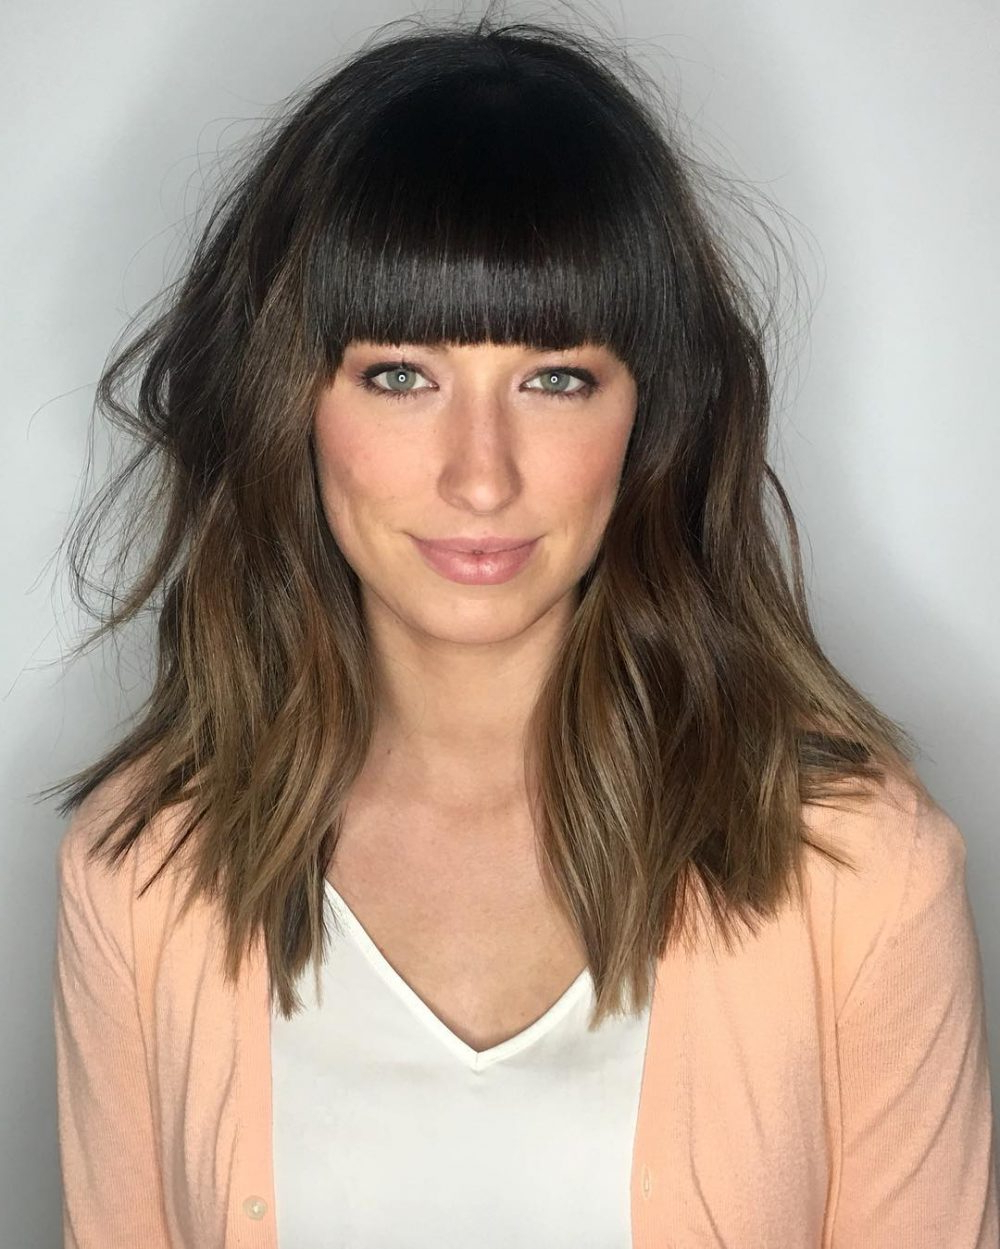 53 Popular Medium Length Hairstyles With Bangs In 2019 Pertaining To Most Up To Date Medium Length Red Hairstyles With Fringes (View 13 of 20)